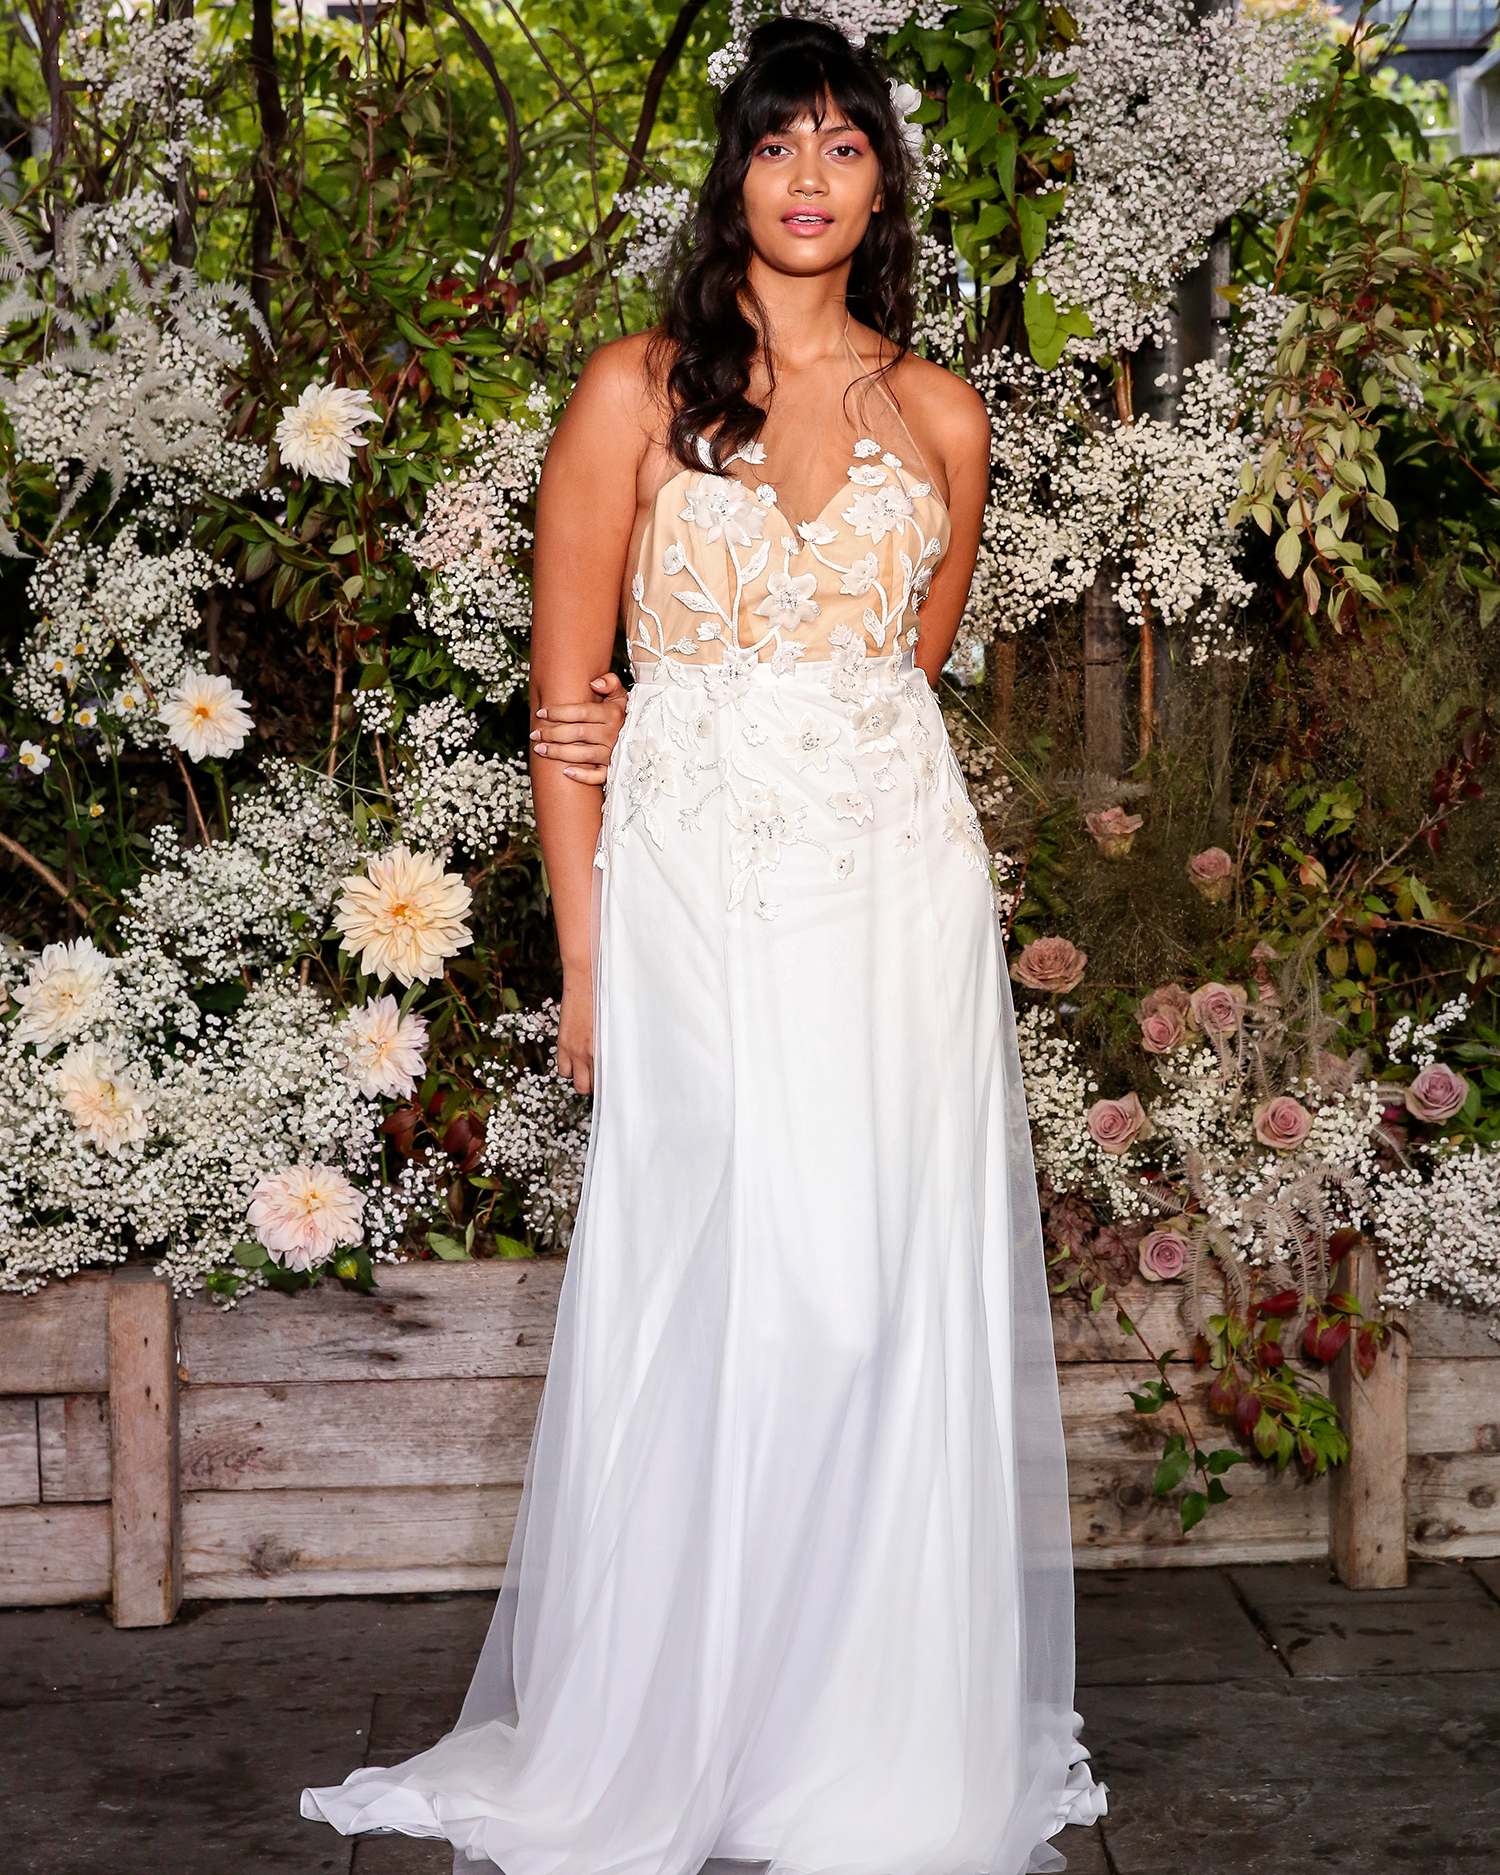 alexandra grecco wedding dress two-toned embellished overlay